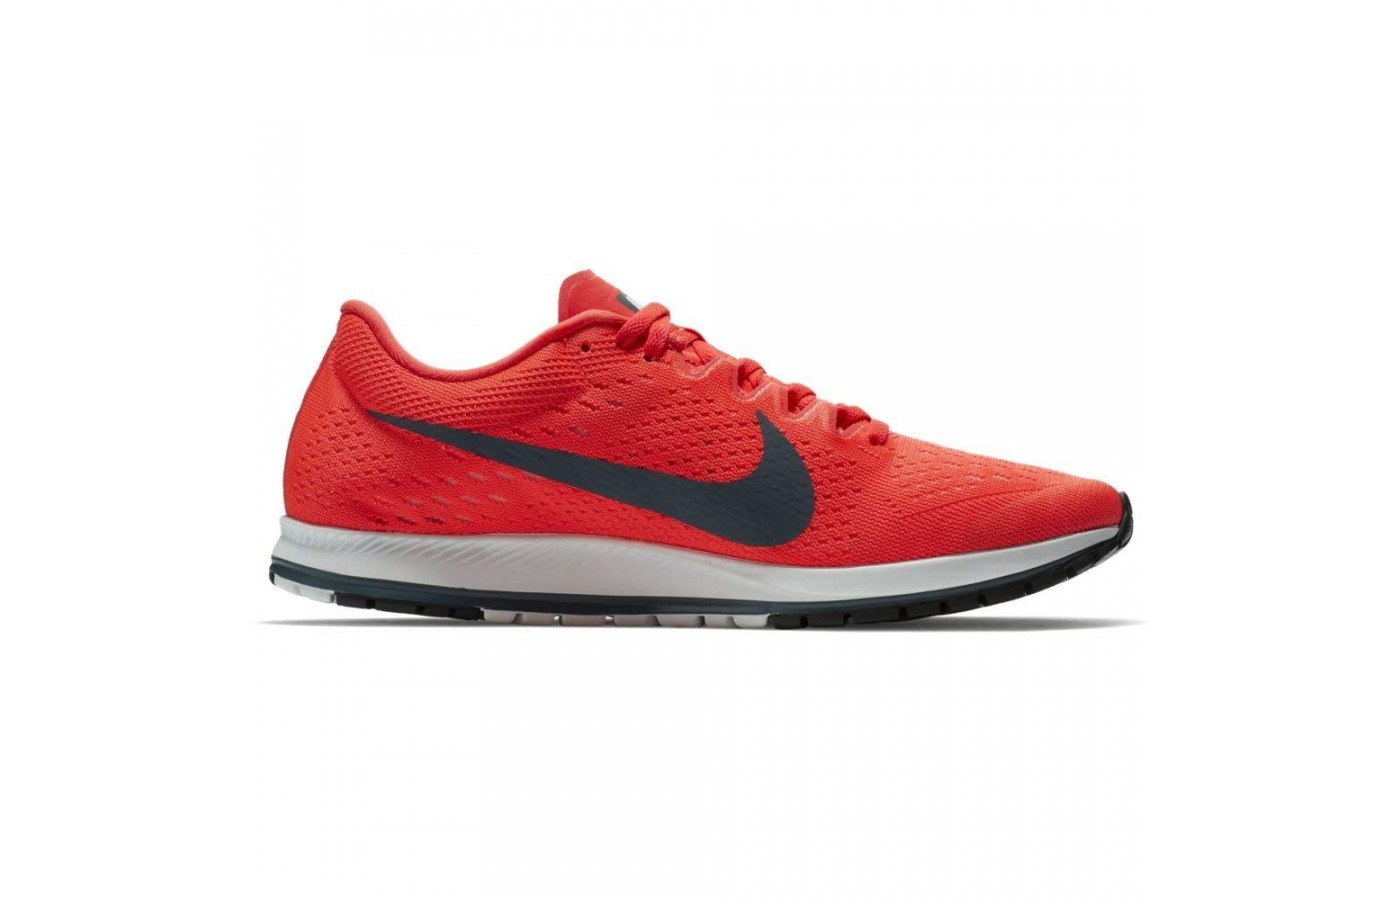 The Nike Zoom Streak 6 offers a responsive outsole for better performance.